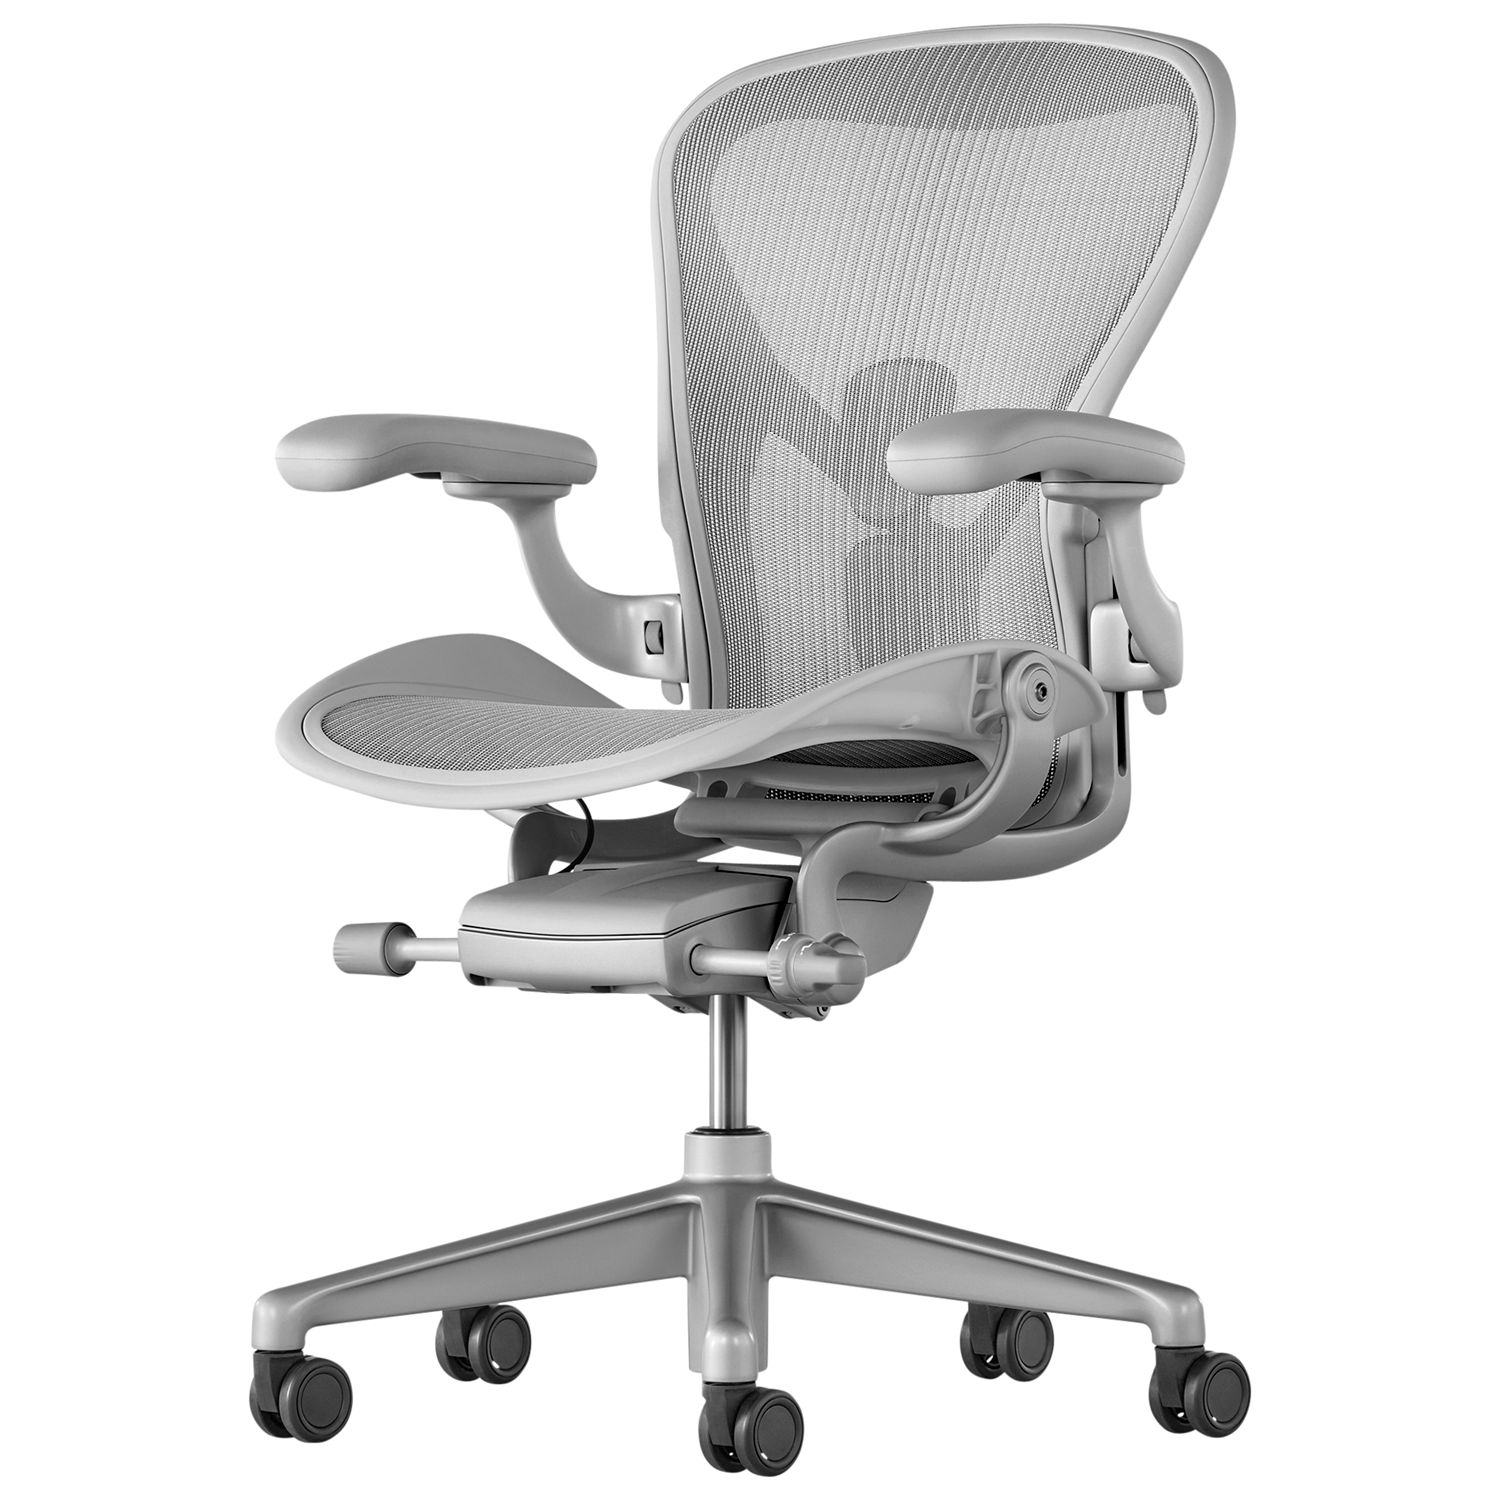 Aero Chair Herman Miller New Aeron Office Chair Mineral At John Lewis Partners